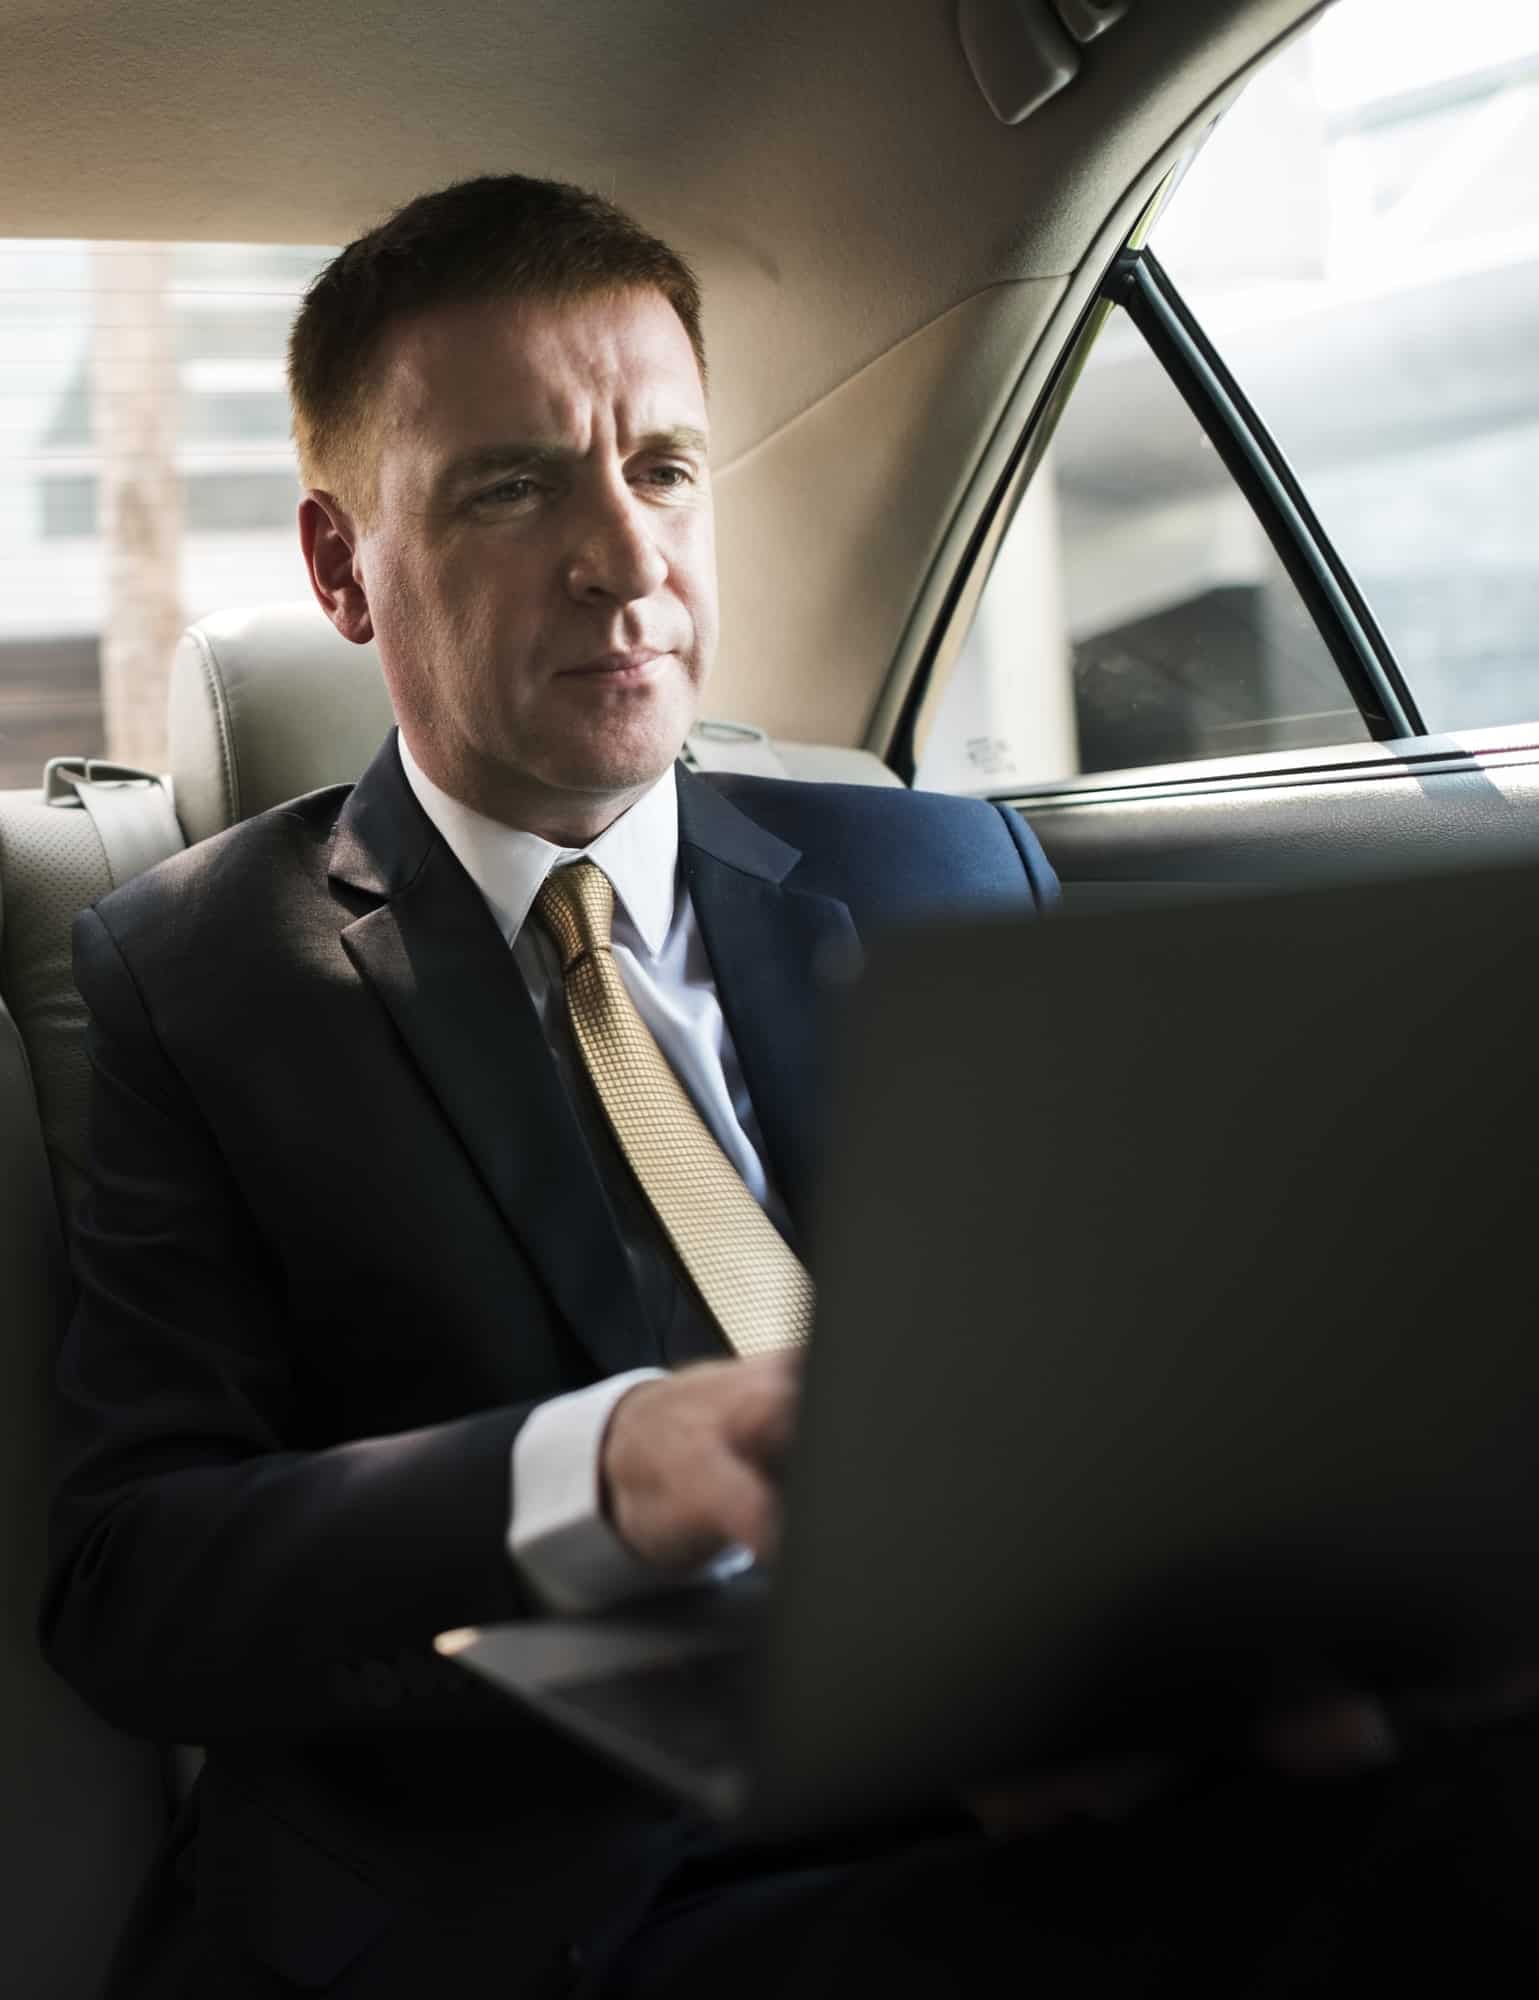 Businessman inside a car working on his laptop